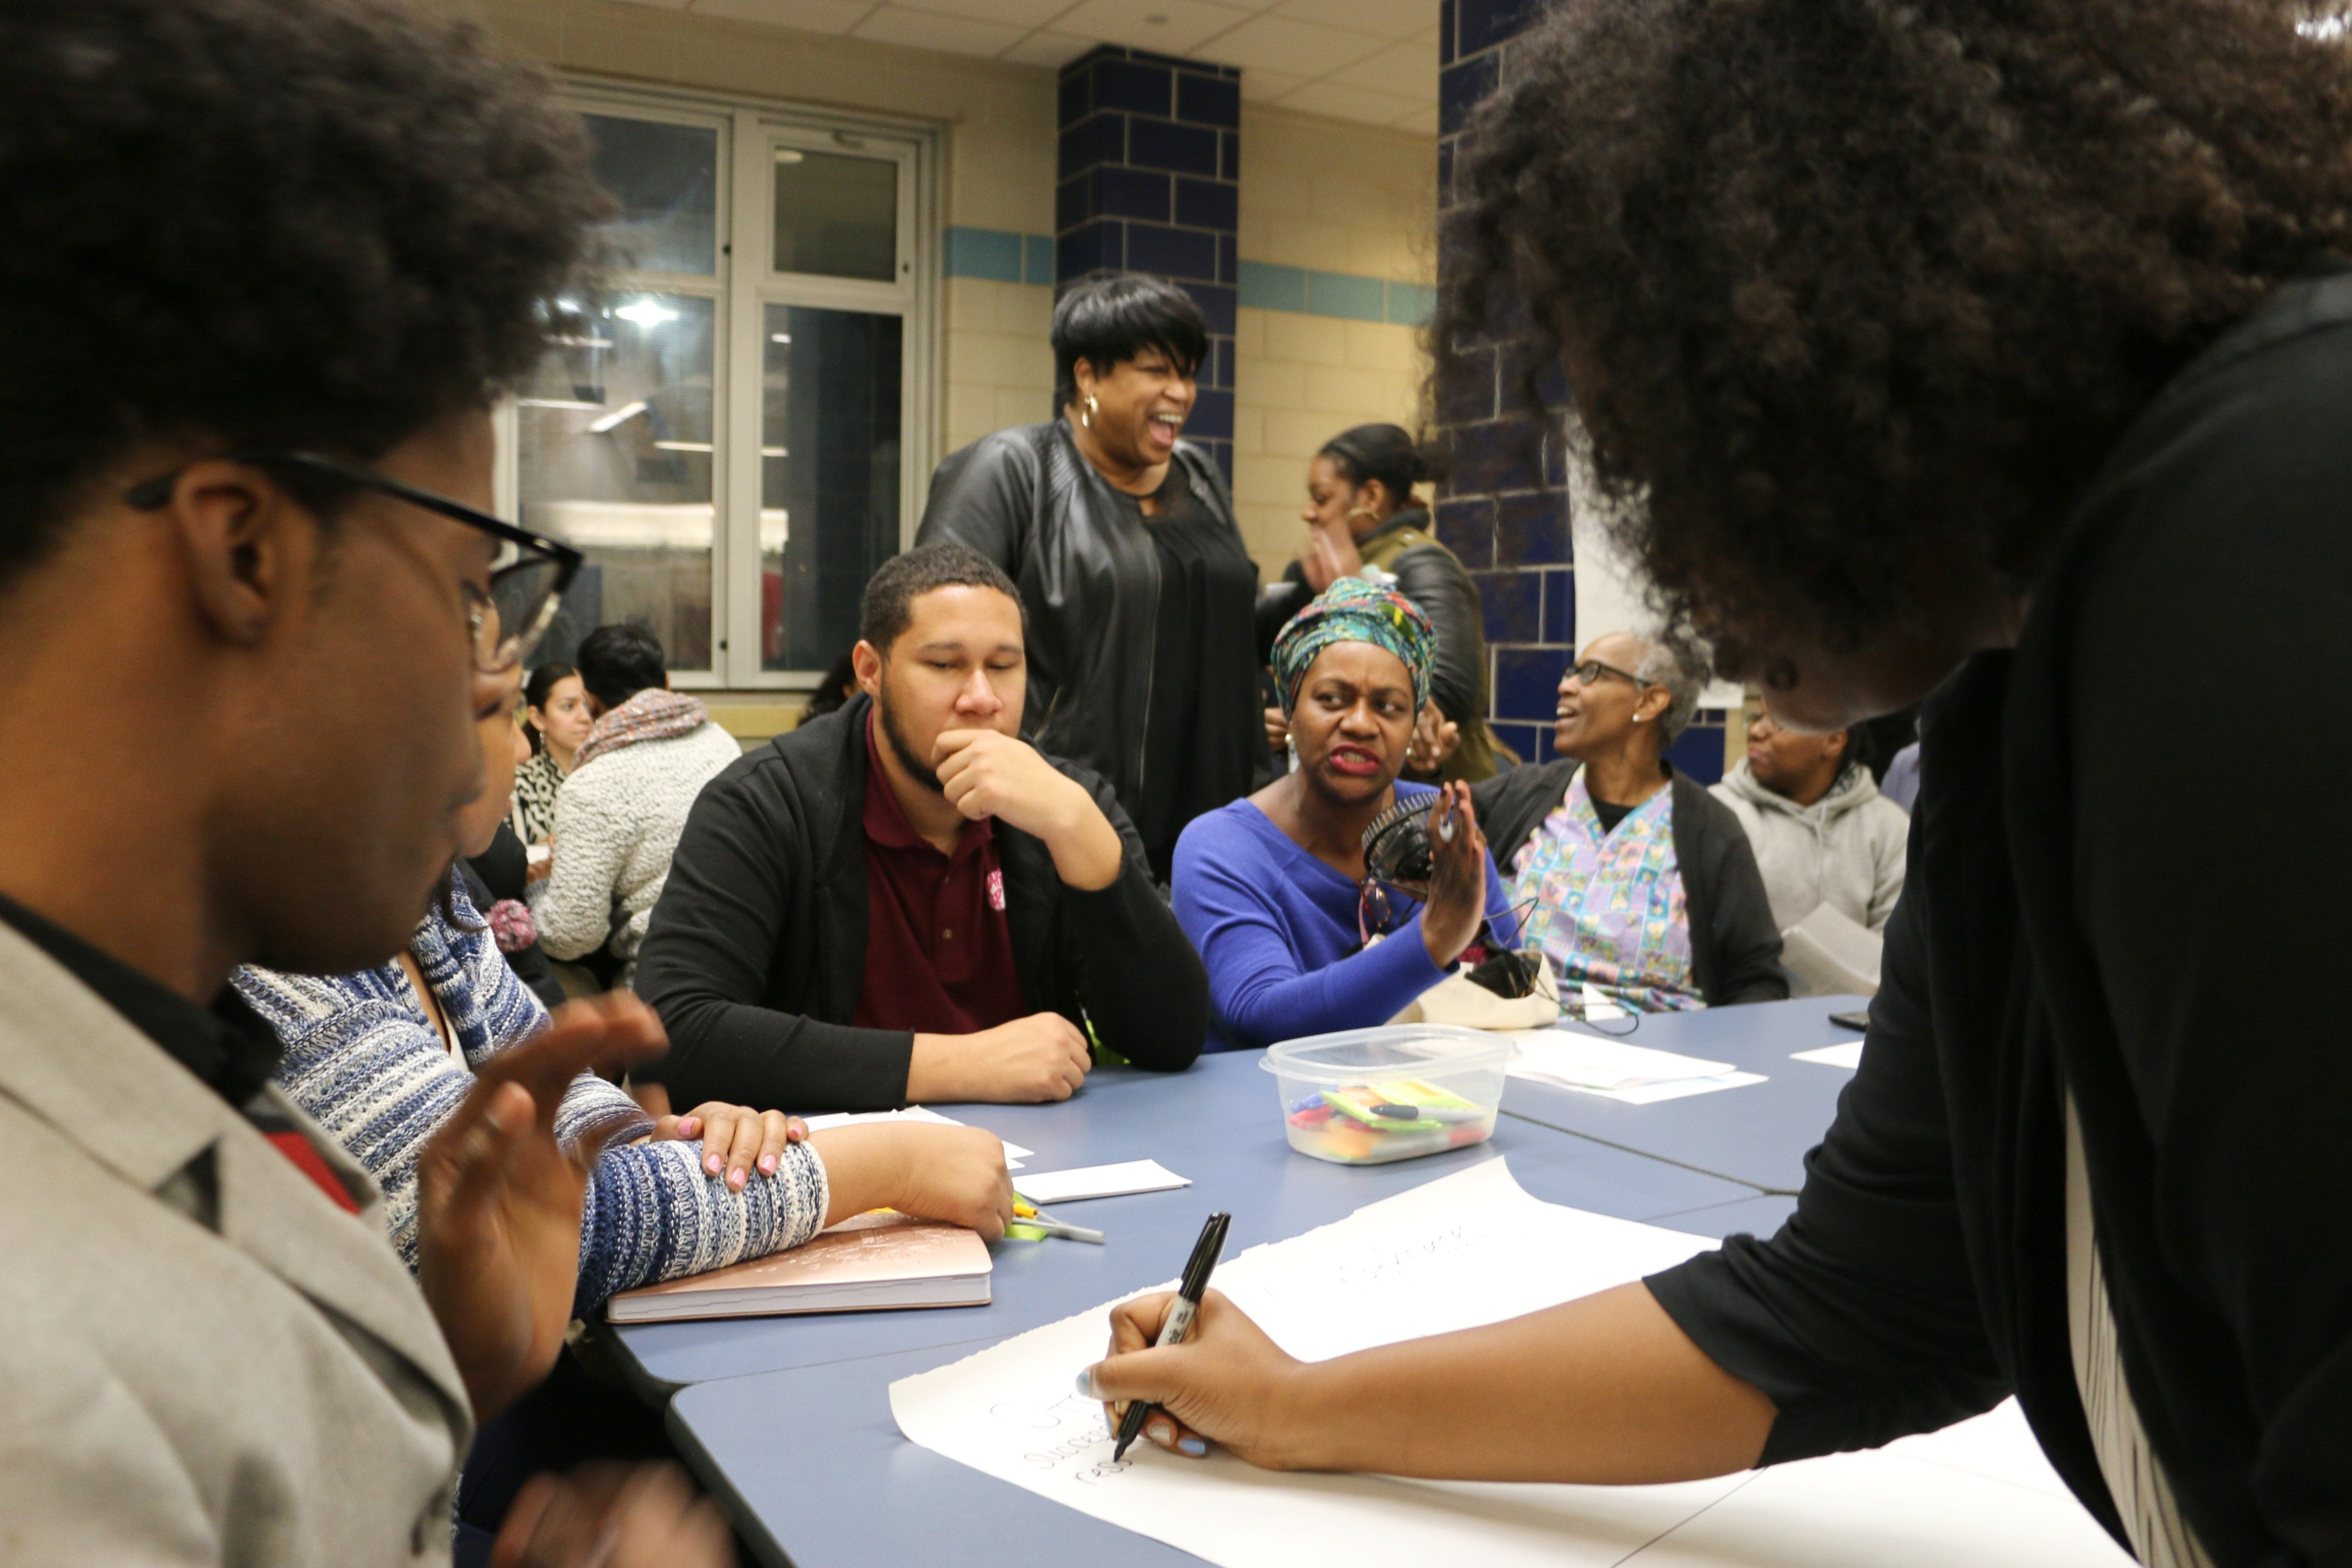 Community members proposed ideas for the district's one-year plan at a forum in January. Now the district is seeking input on its 10-year plan.